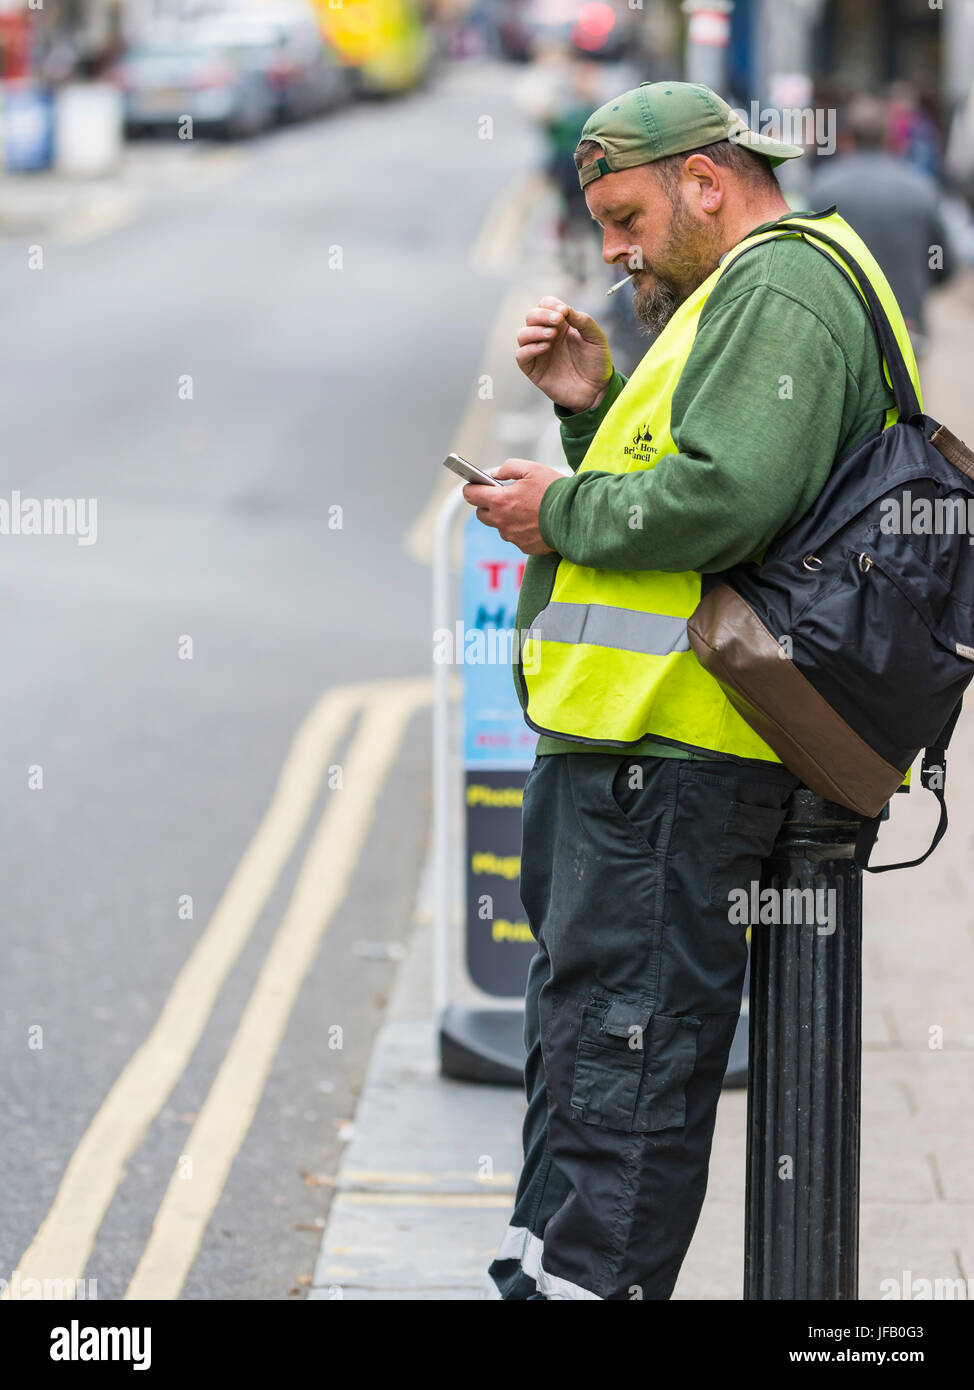 Man smoking on the street. - Stock Image